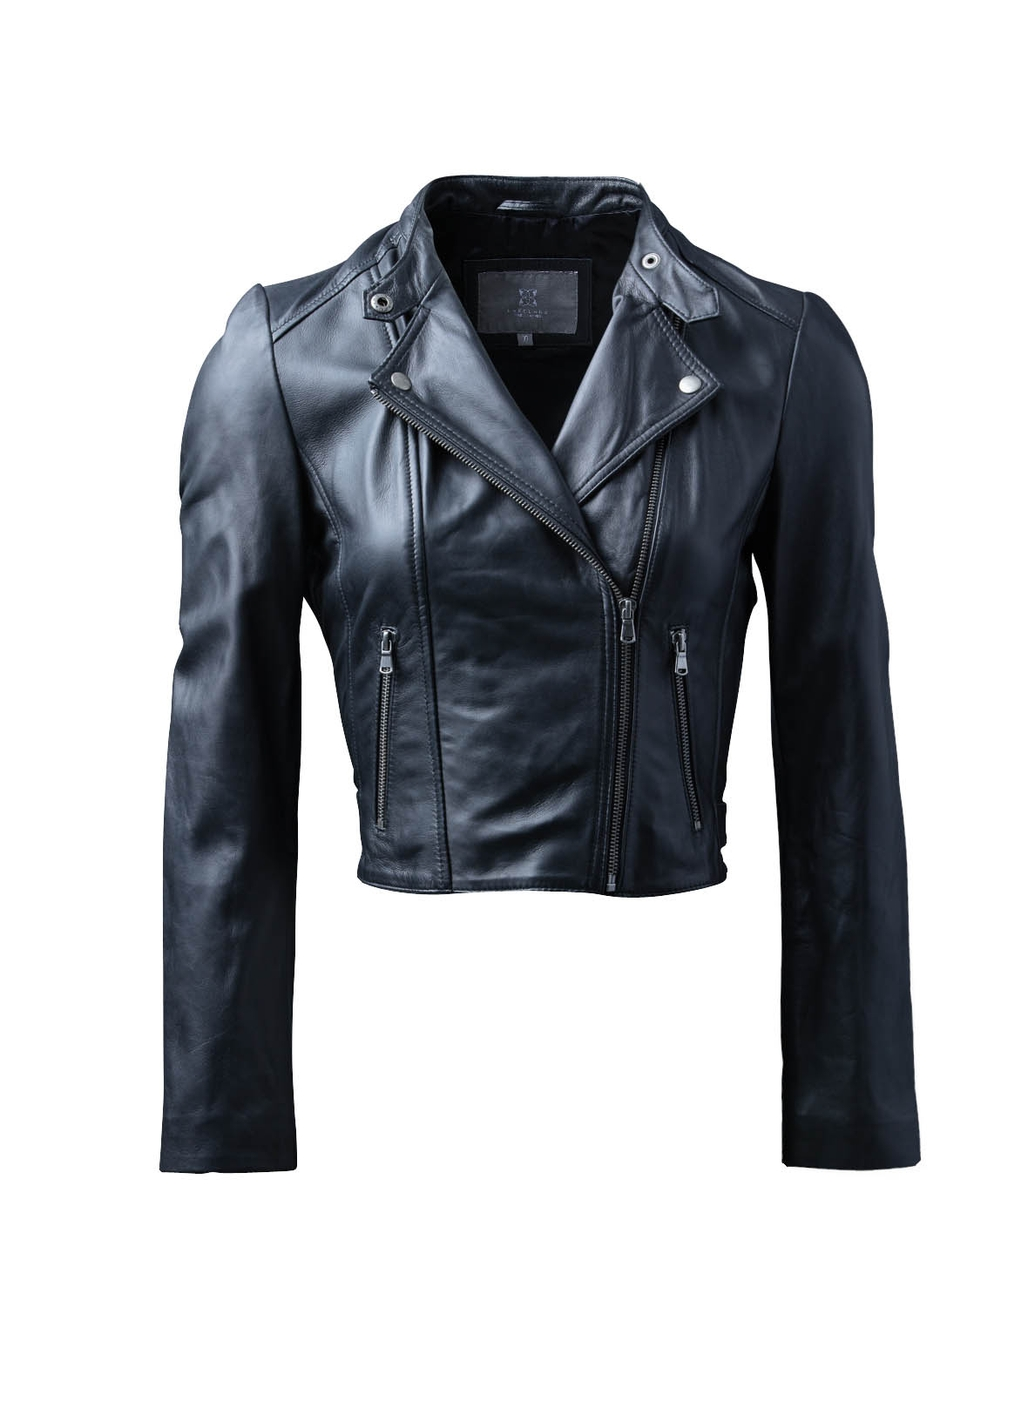 Glebe II Leather Biker Jacket in Black